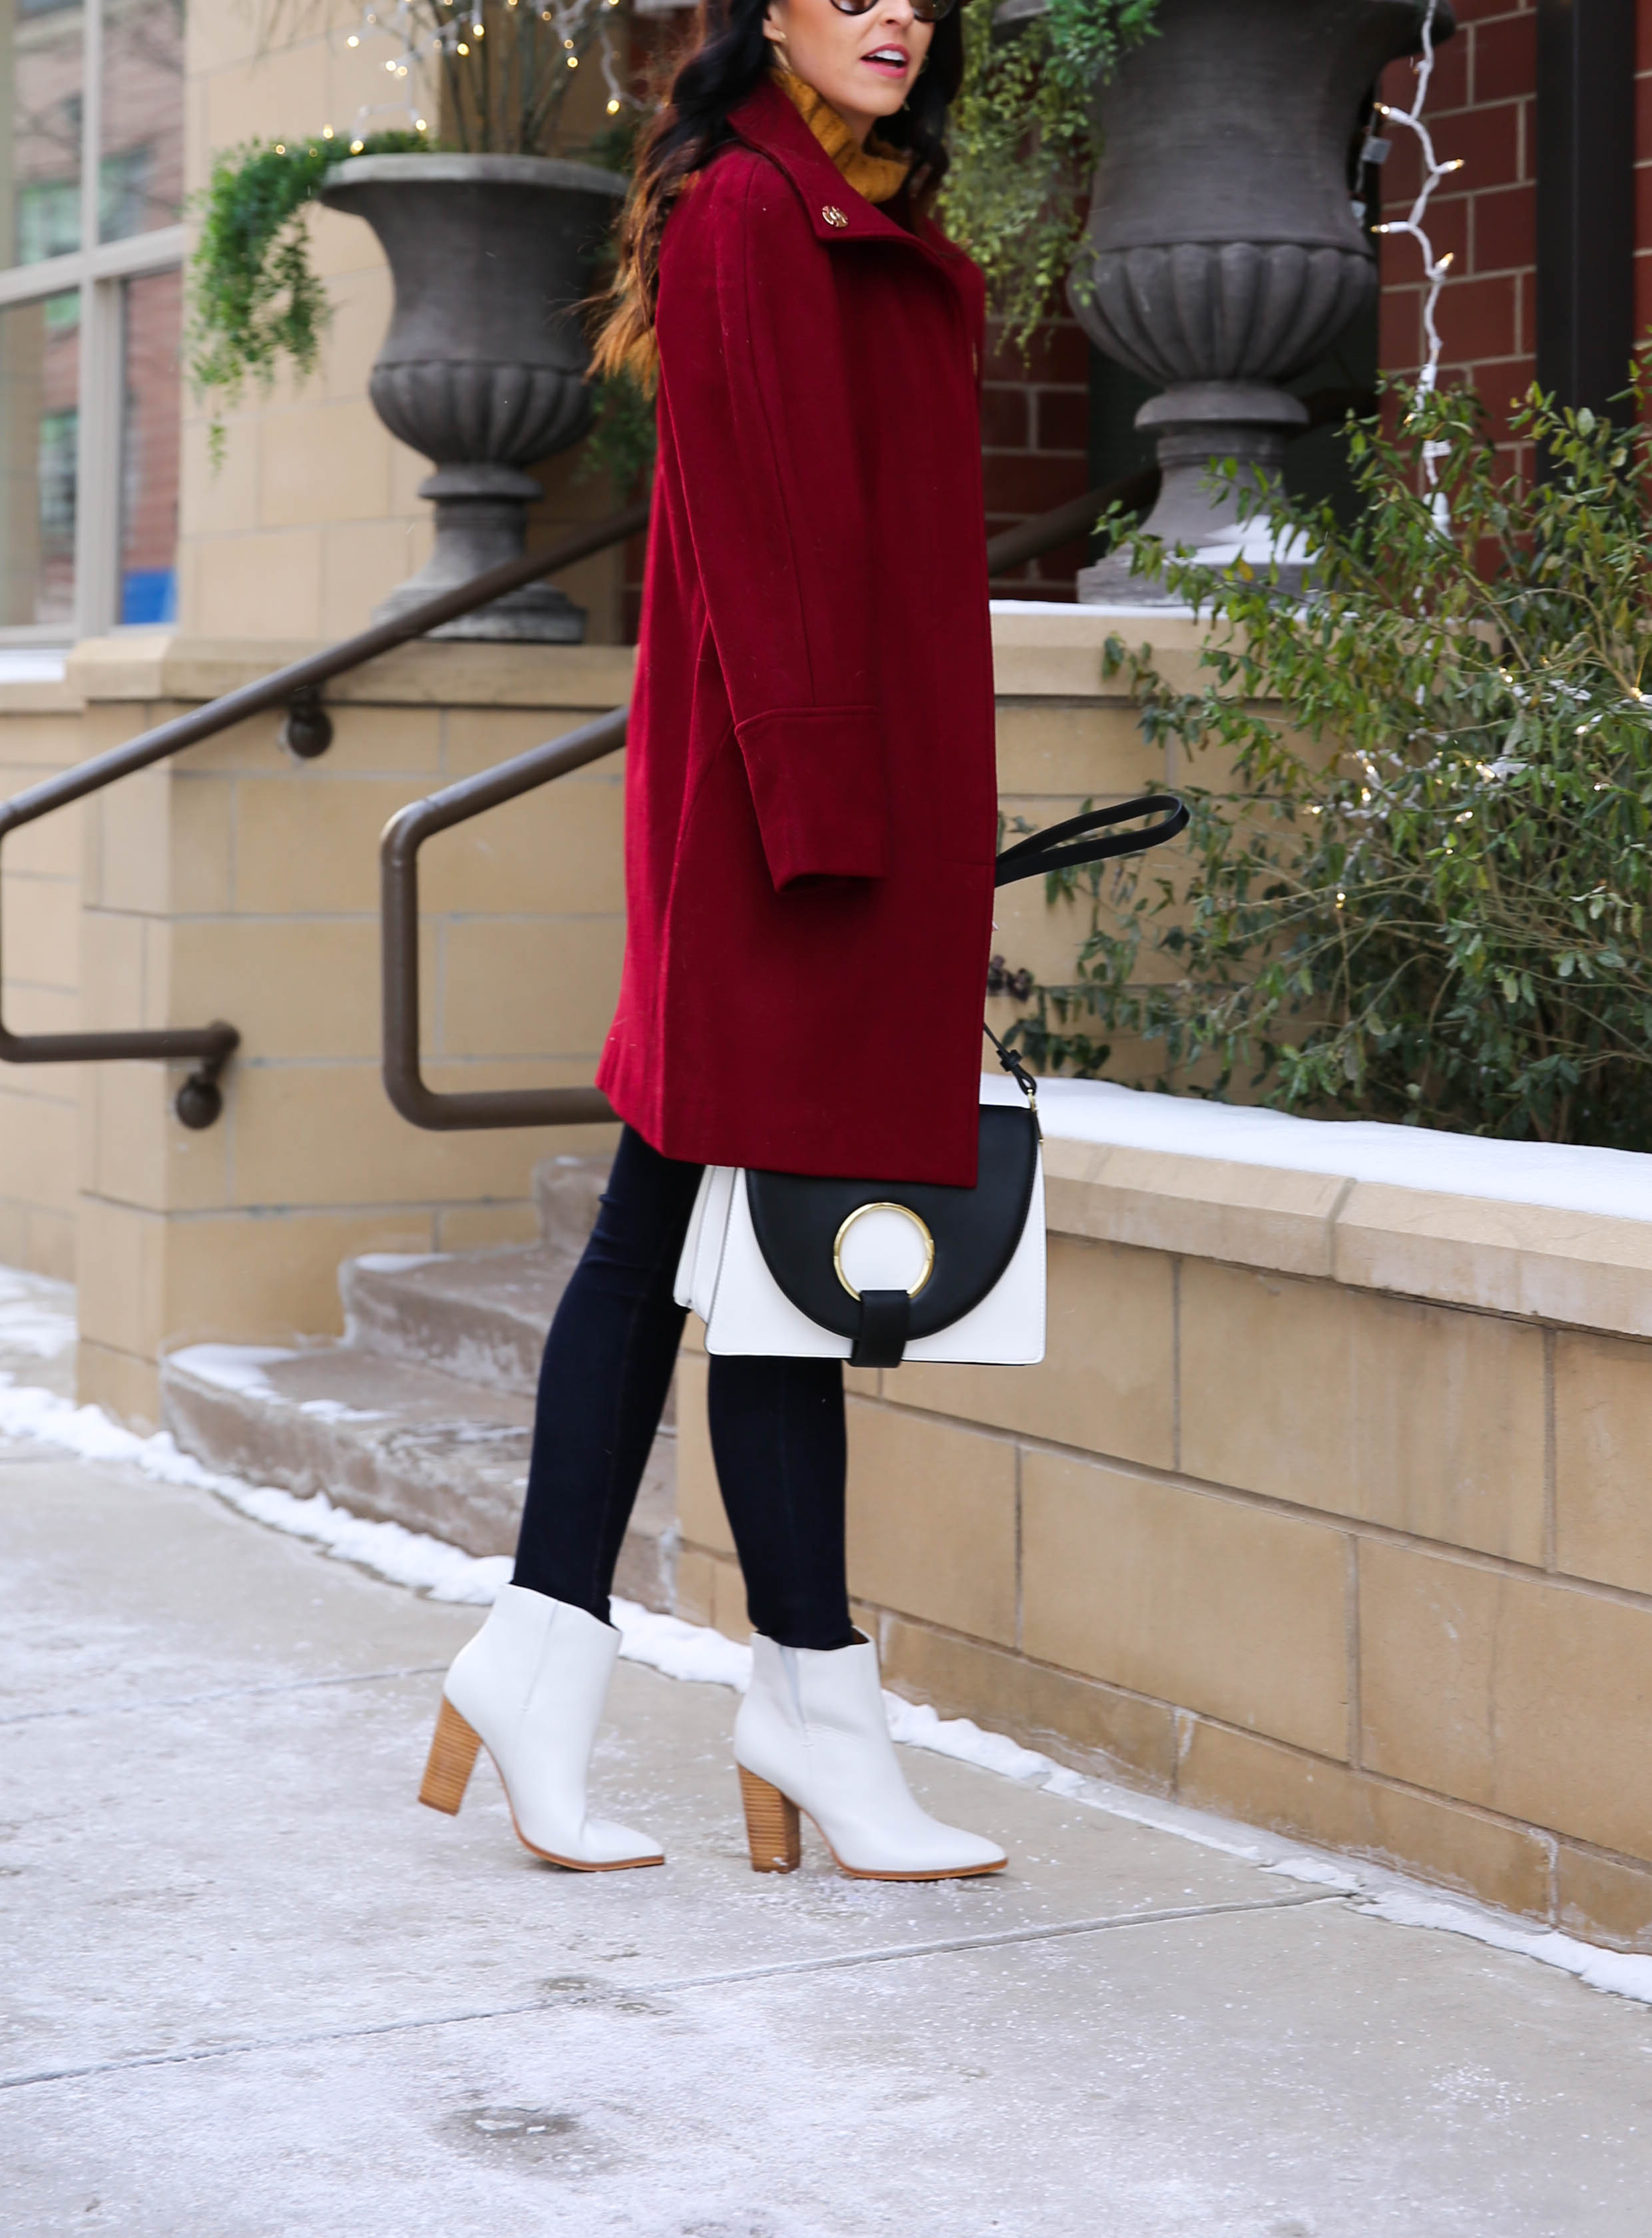 PaleOMG - The White Bootie Trend I'm Loving